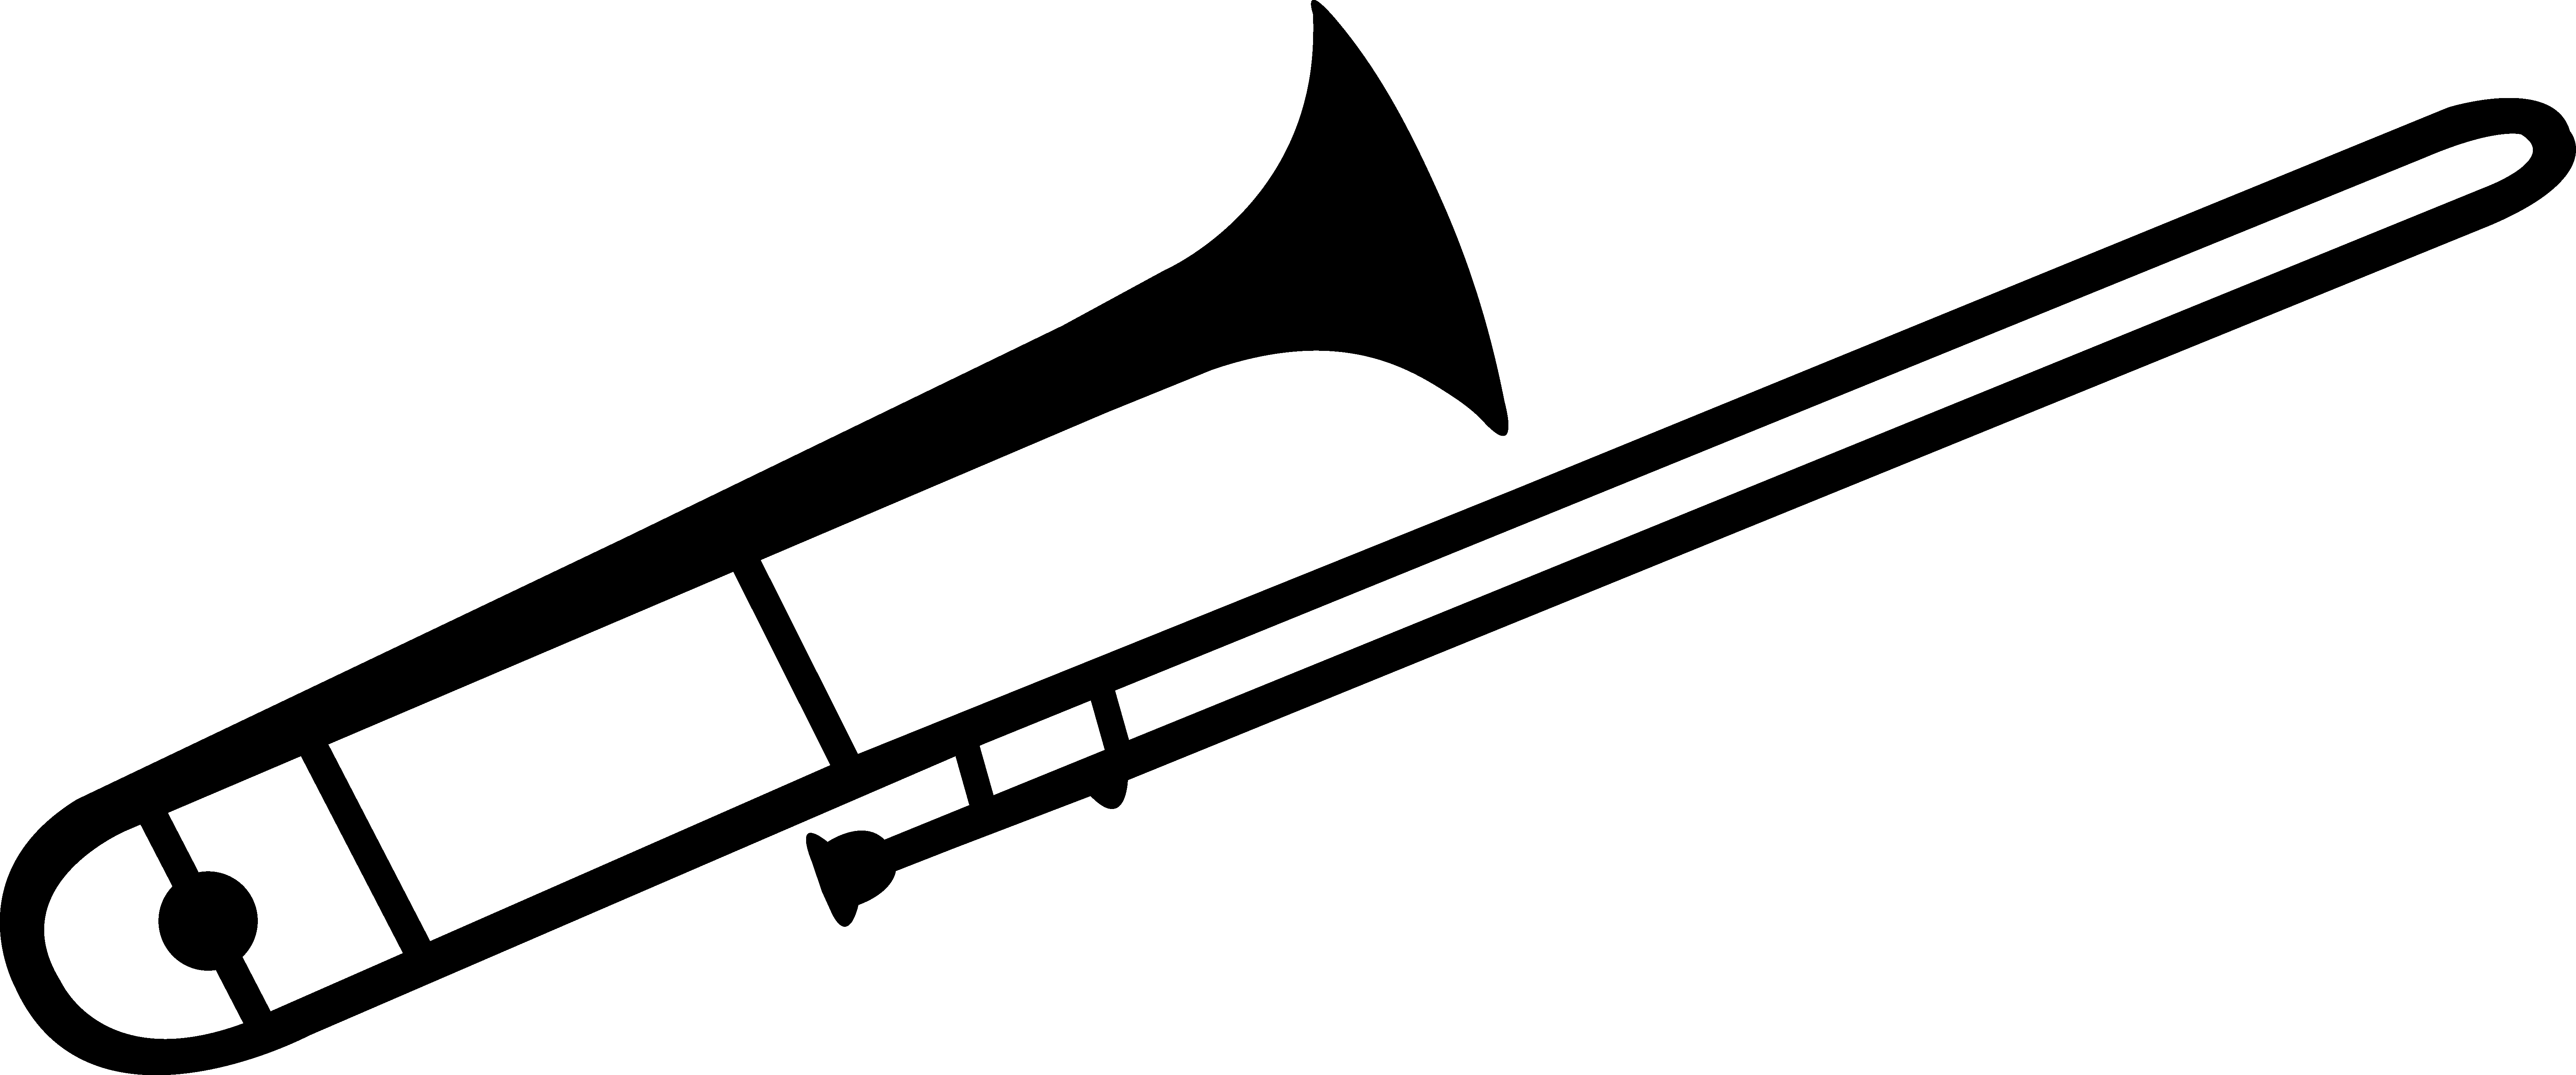 Trombone vector. Coloring page ethicstech org